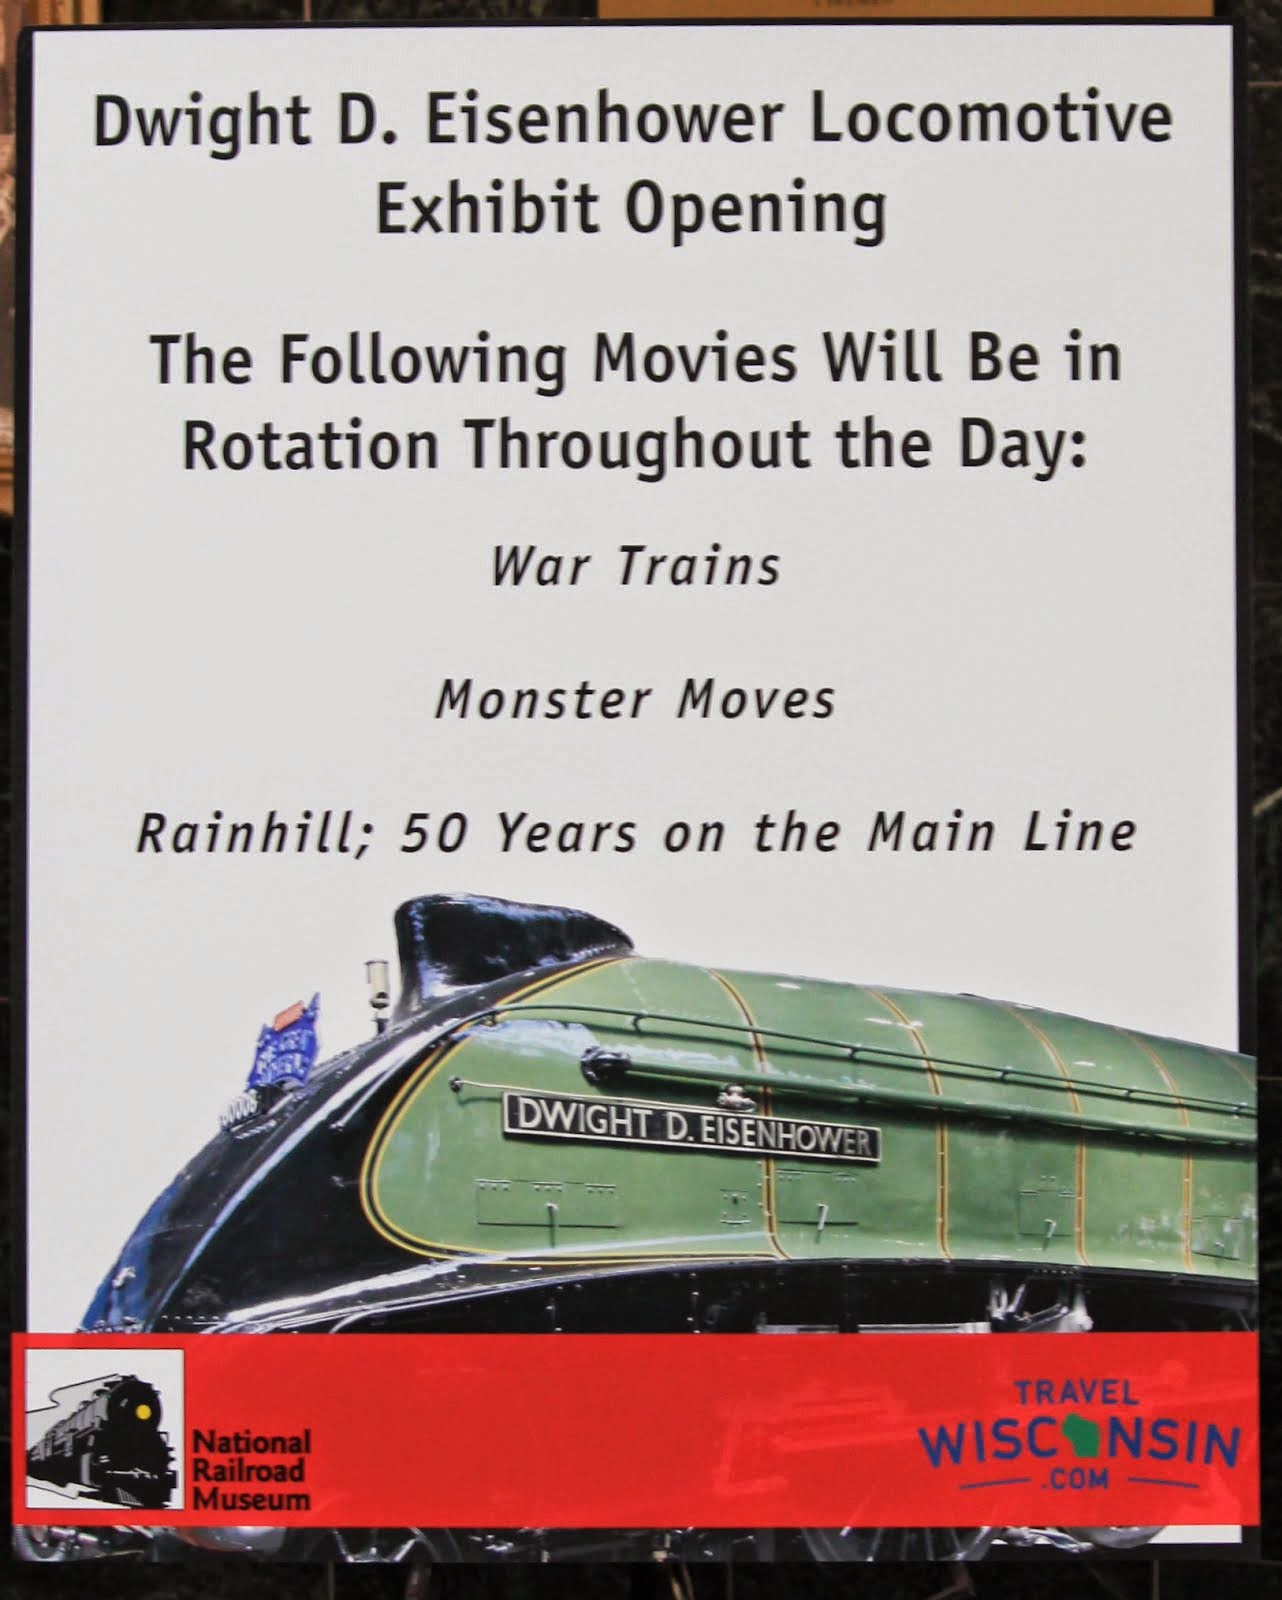 Dwight D. Eisenhower Locomotive Exhibit Opening August 2, 2014